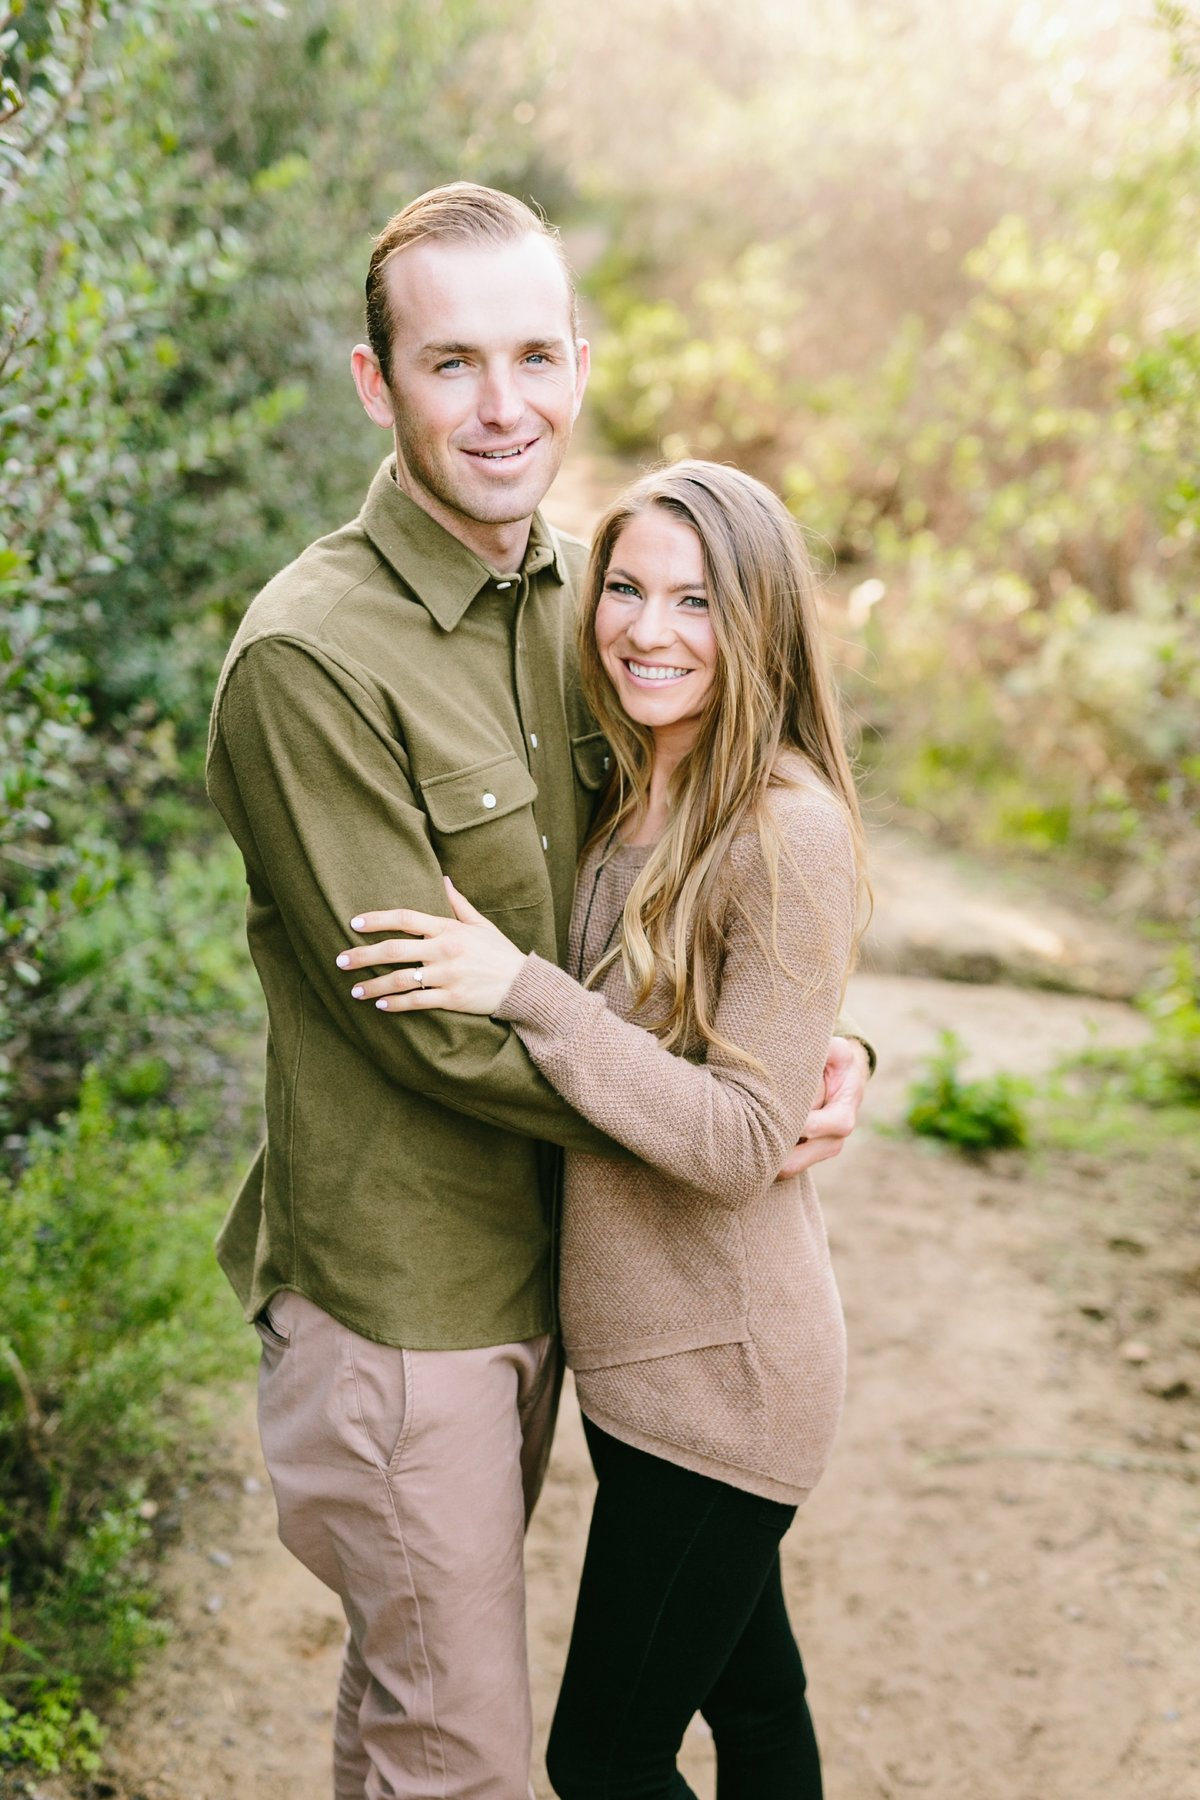 Engagement Photos-Jodee Debes Photography-238